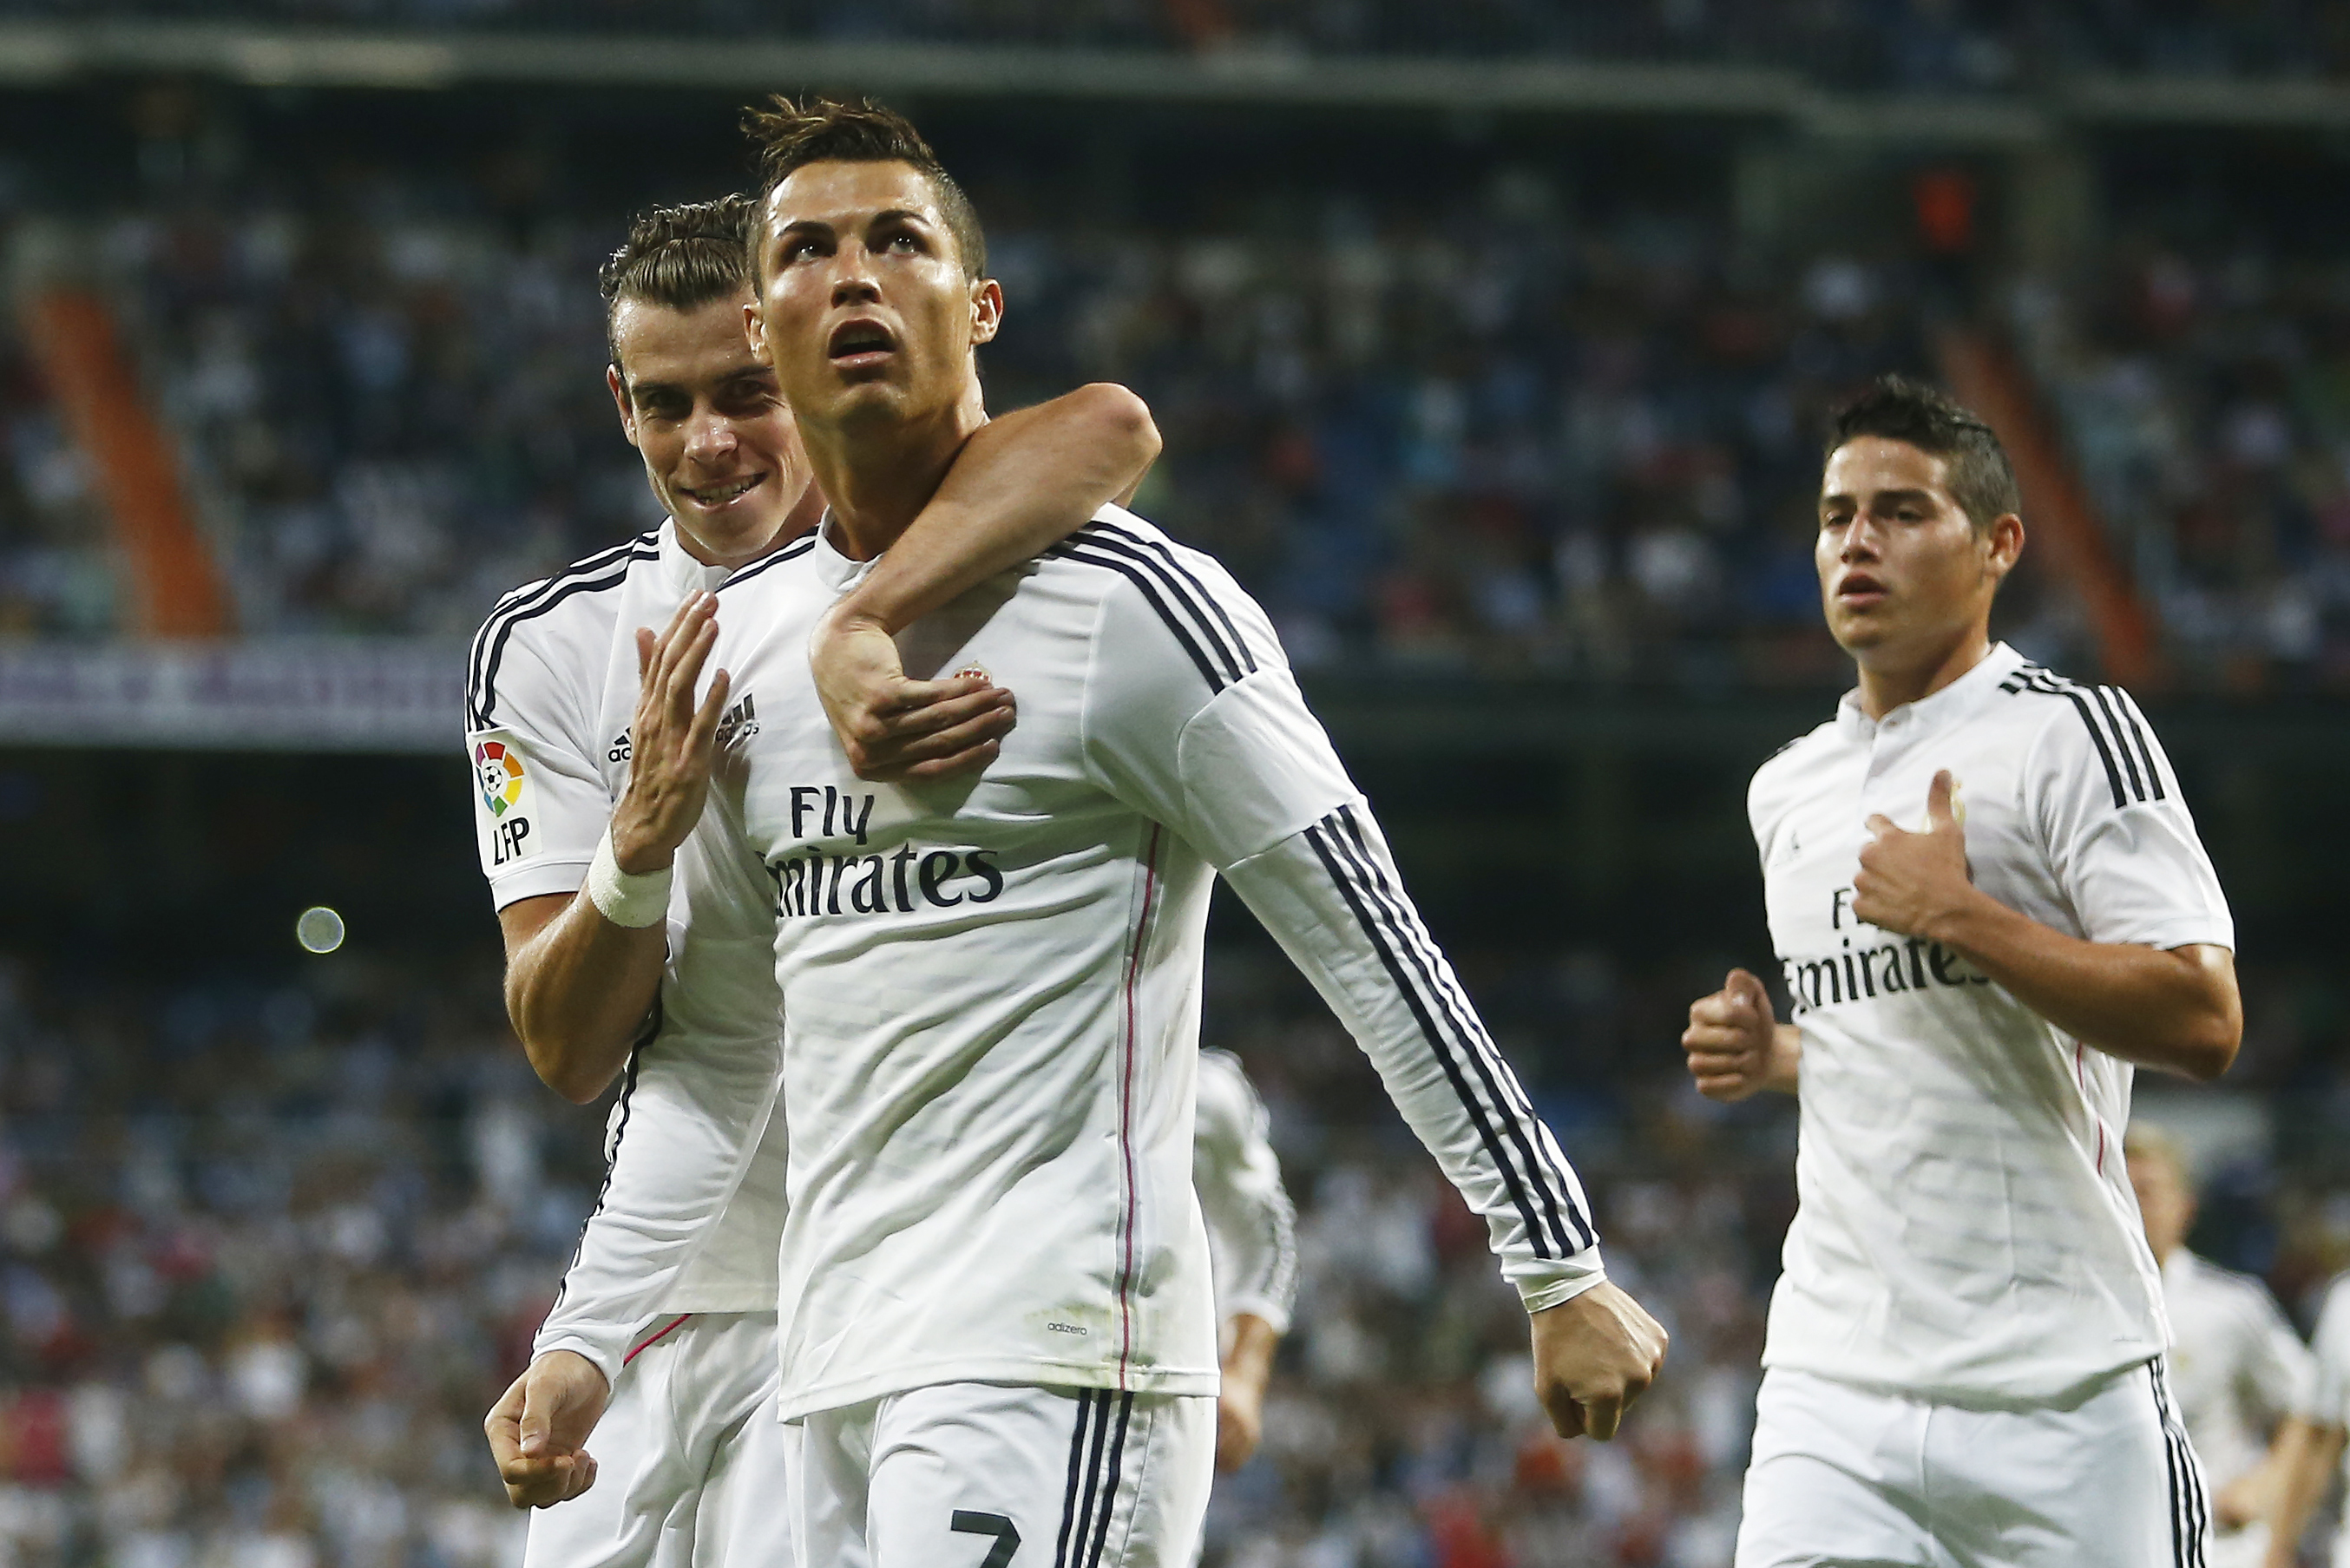 Real Madrid vs. Elche: Score, Grades and Post-Match Reaction | Bleacher Report | Latest News, Videos and Highlights